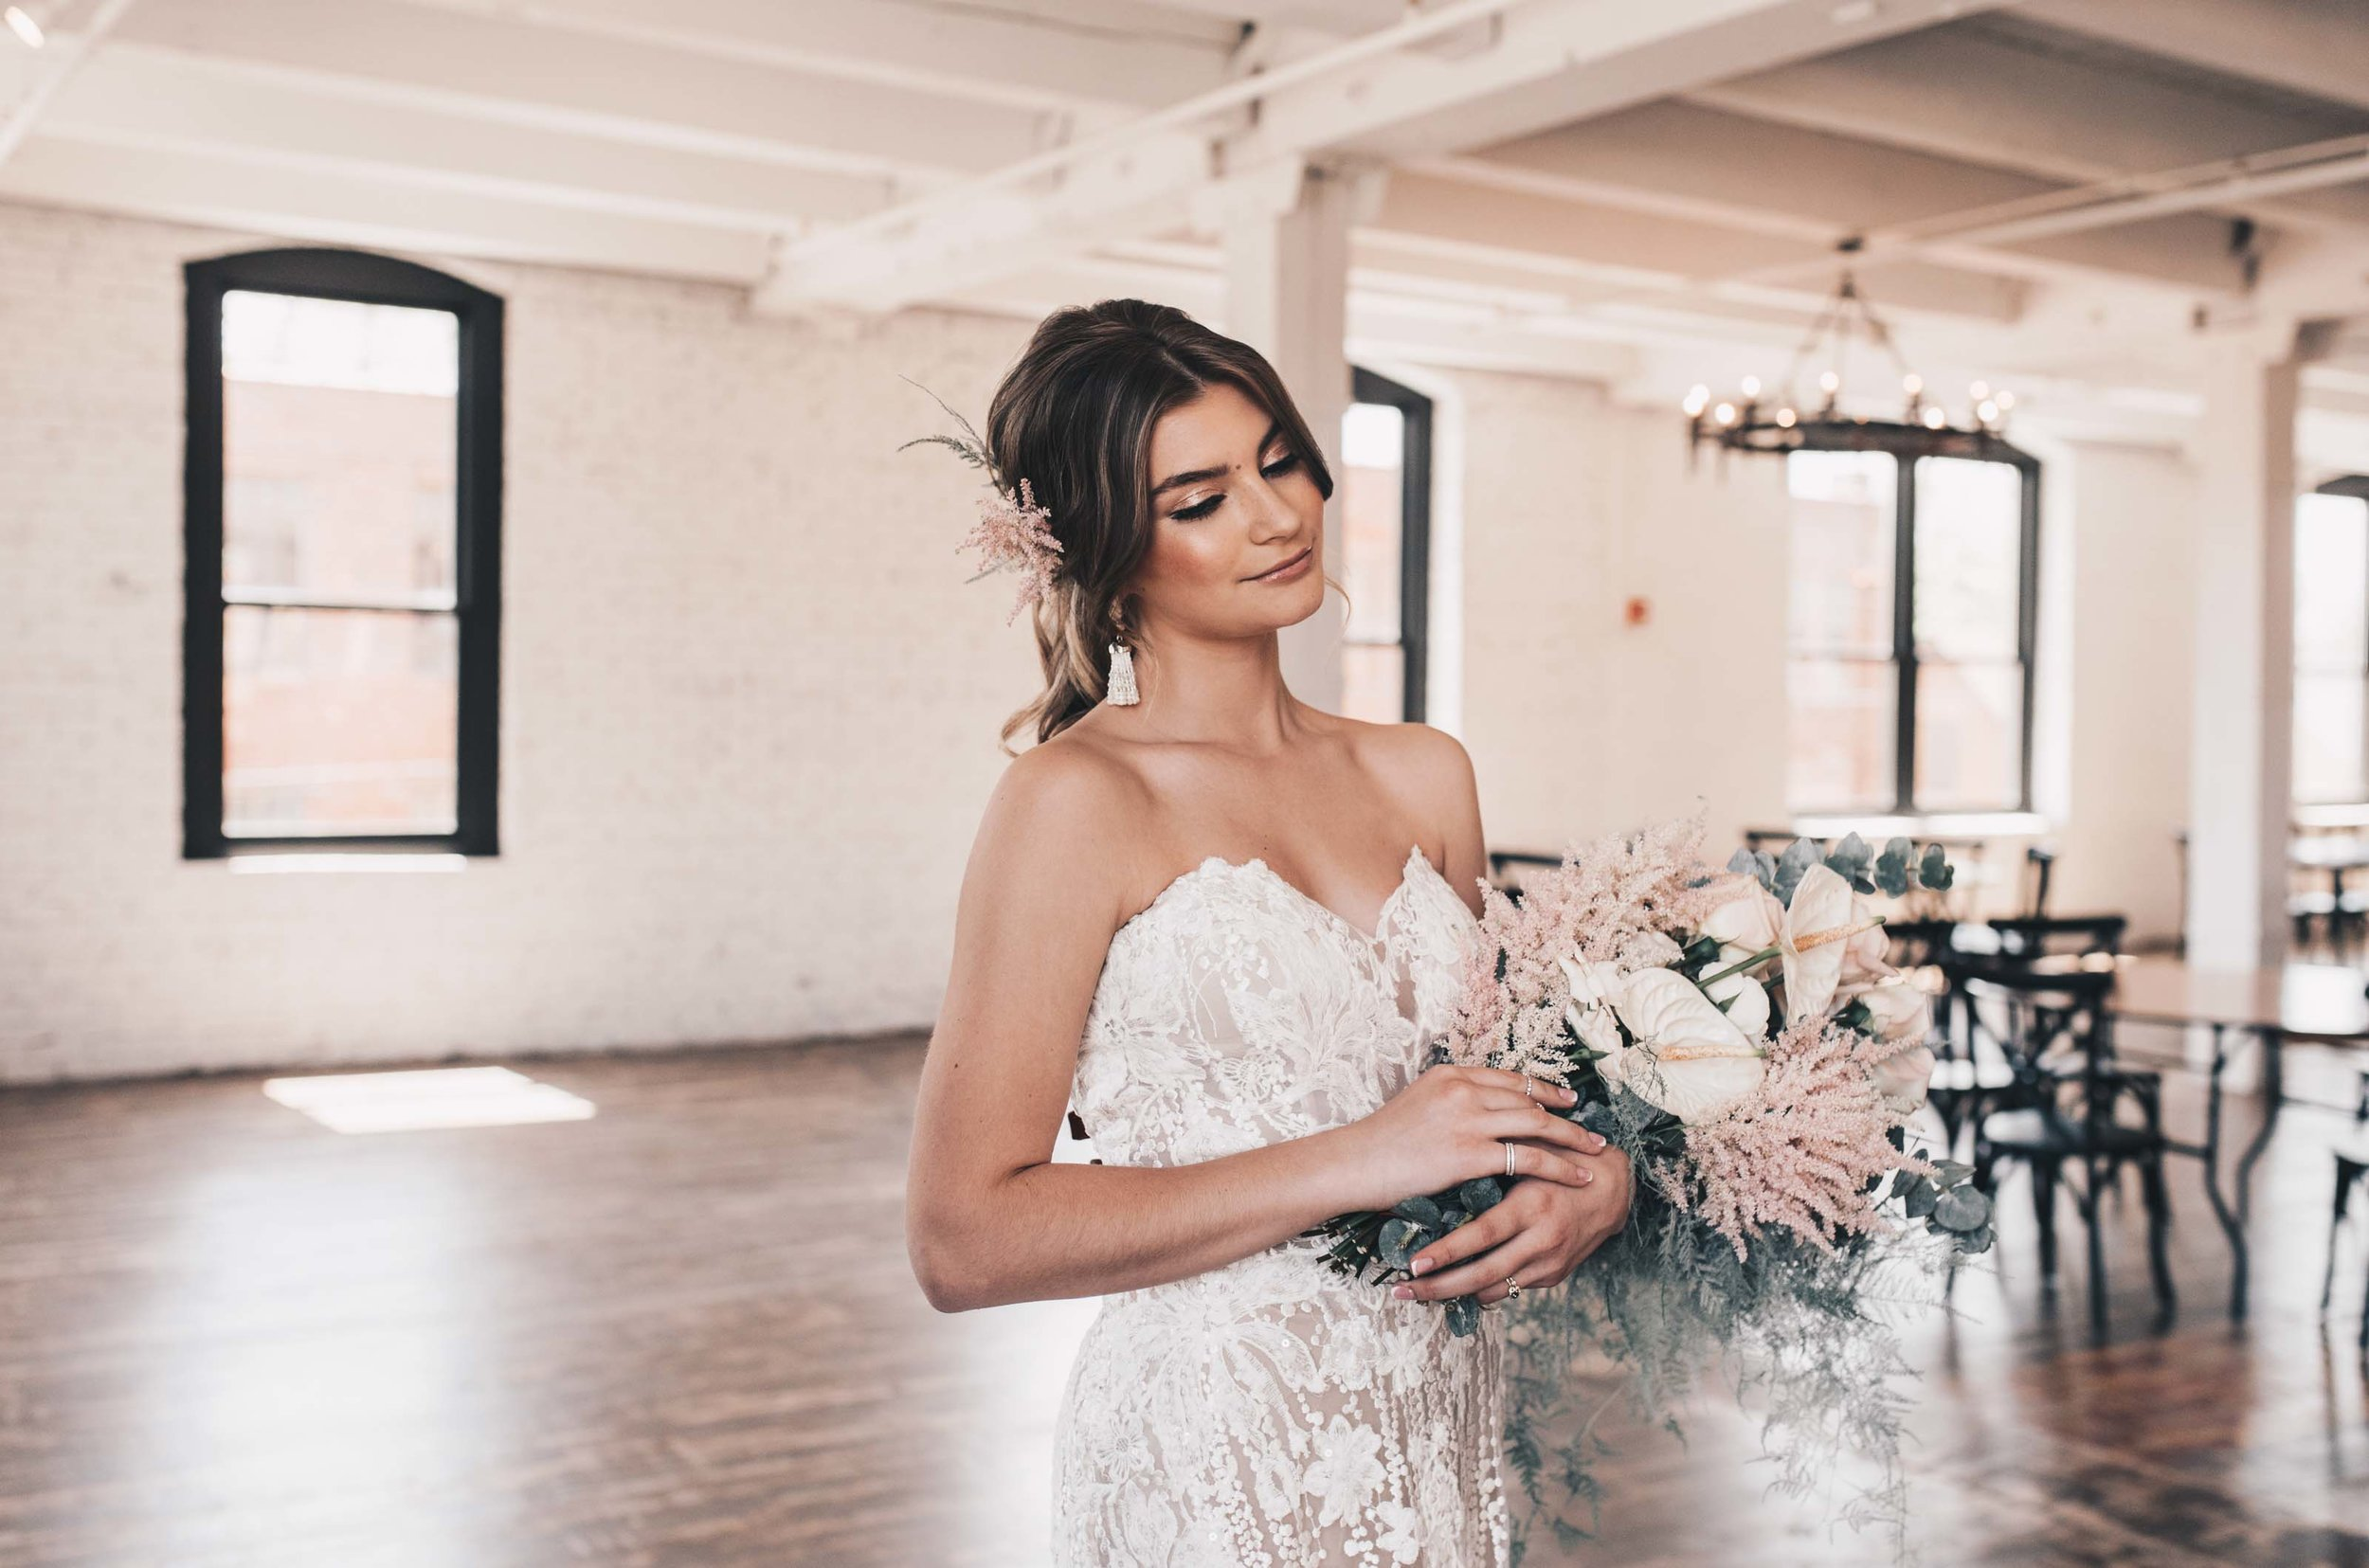 Boho Bride, Industrial Wedding, Company 251 Wedding, Bride Photos, Modern Bride, Midwest Bride, Romantic Rustic Wedding, Wedding Decor, Wedding Dress, Boho Wedding